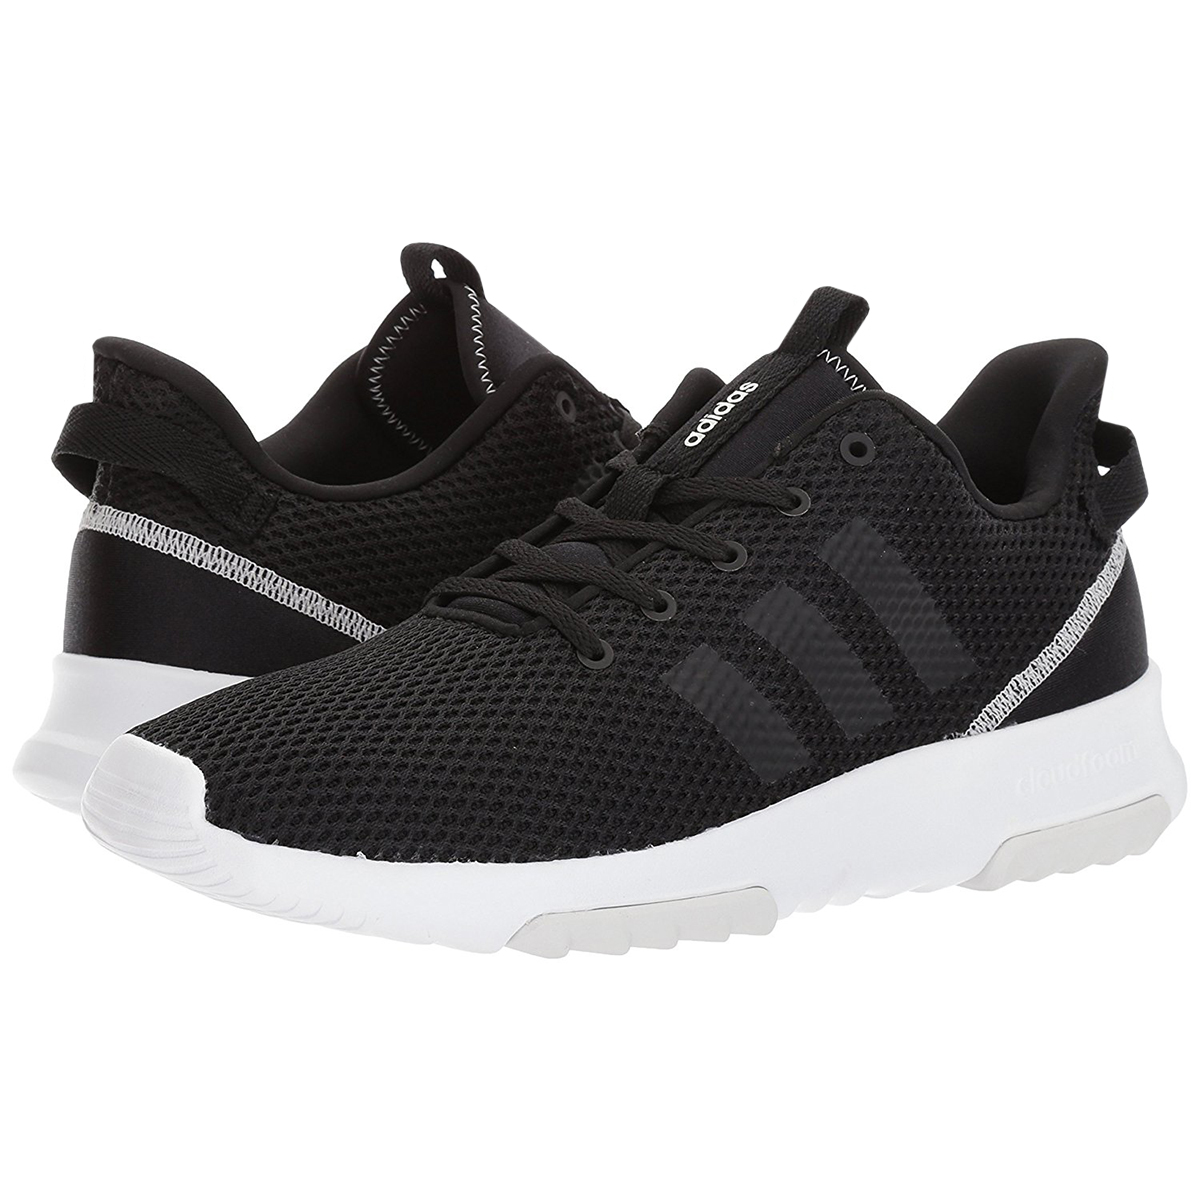 f58917f0d3f Adidas Women s Neo CloudFoam Racer Trail Running Shoes - Black White ...